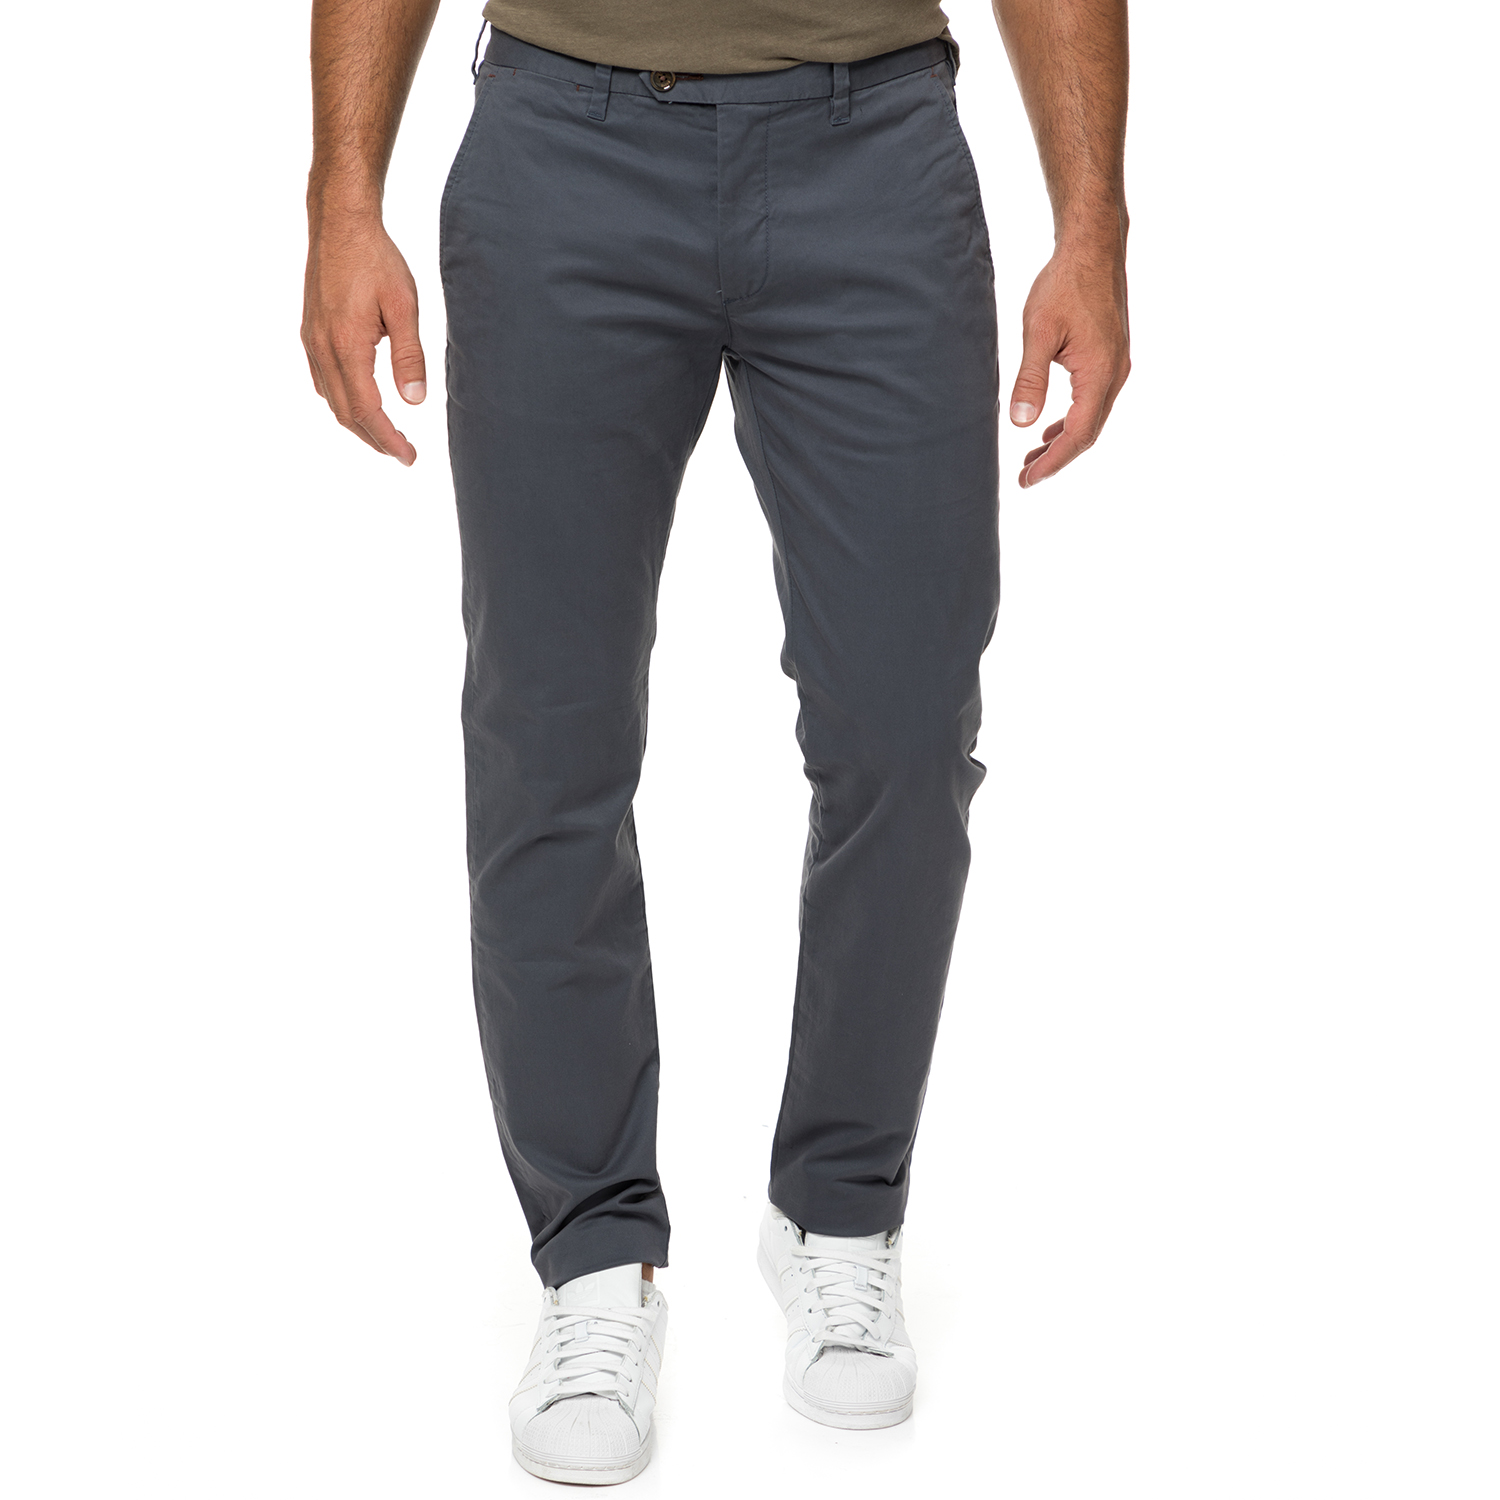 TED BAKER - Ανδρικό chino παντελόνι TED BAKER μπλε ανδρικά ρούχα παντελόνια chinos